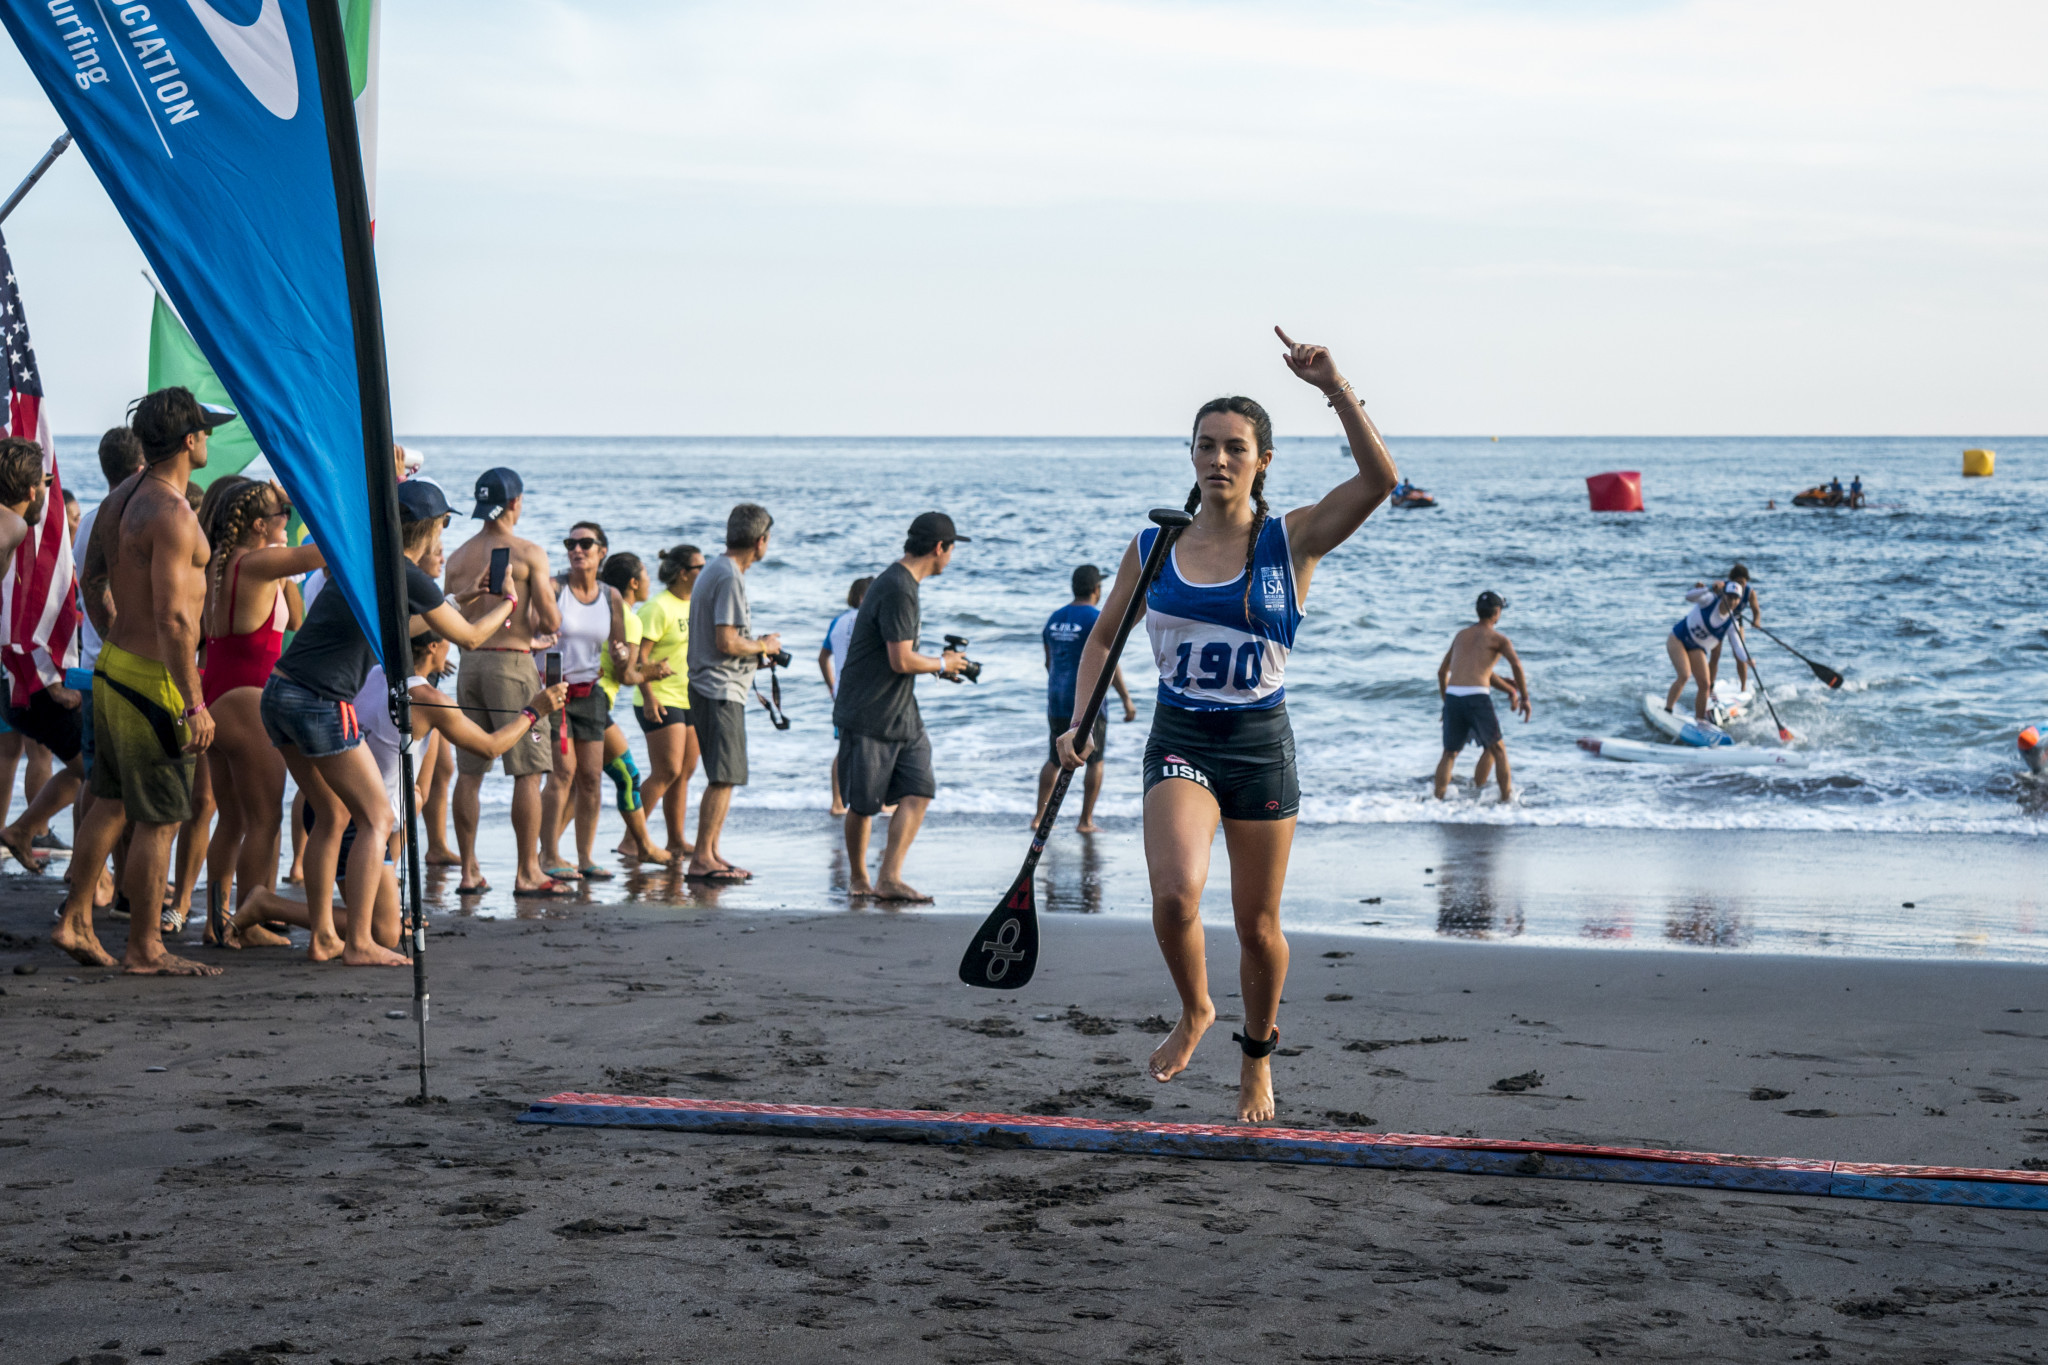 Jade Howson from the United States won the standup paddle sprint race to give her team off to a winning start ©ISA